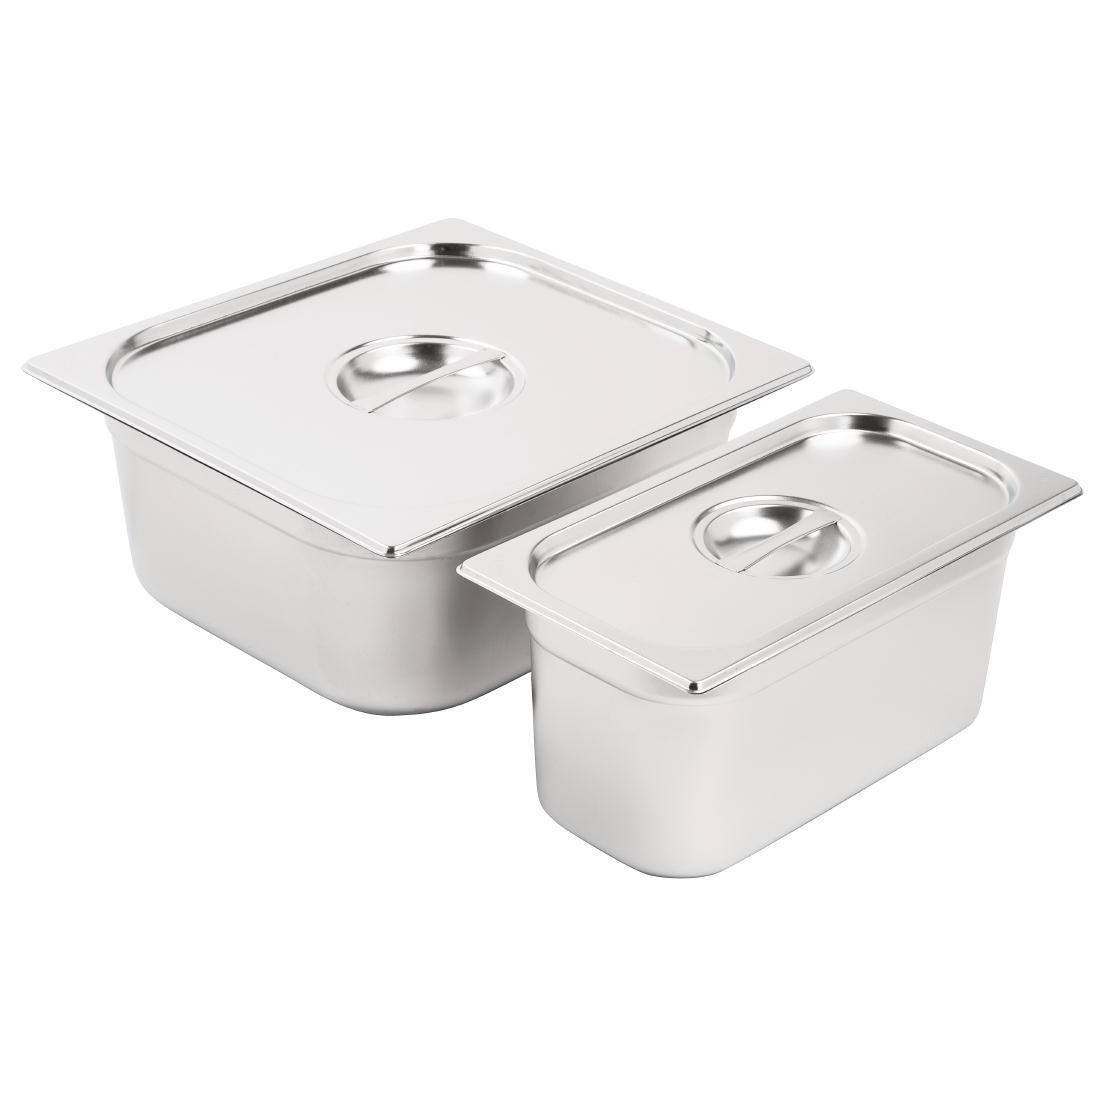 Vogue Stainless Steel Gastronorm Pan Set 1/3 and 2/3 with Lids - SA240